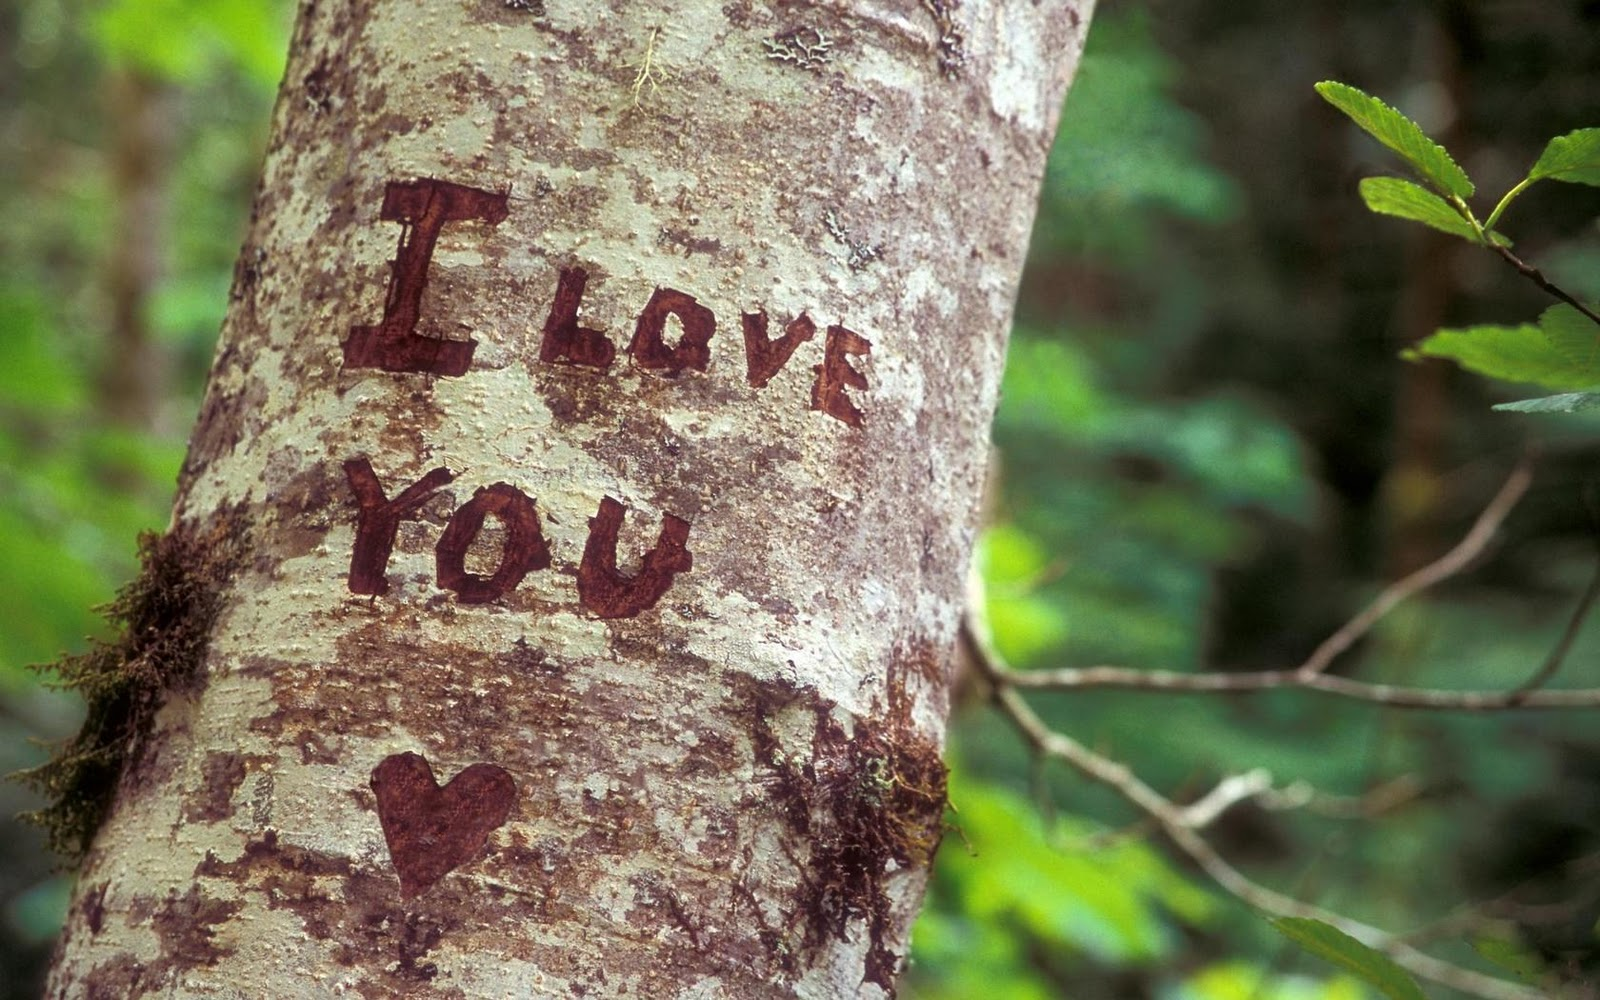 I love you heart tree nature hd wallpaper love - Love nature wallpaper hd ...